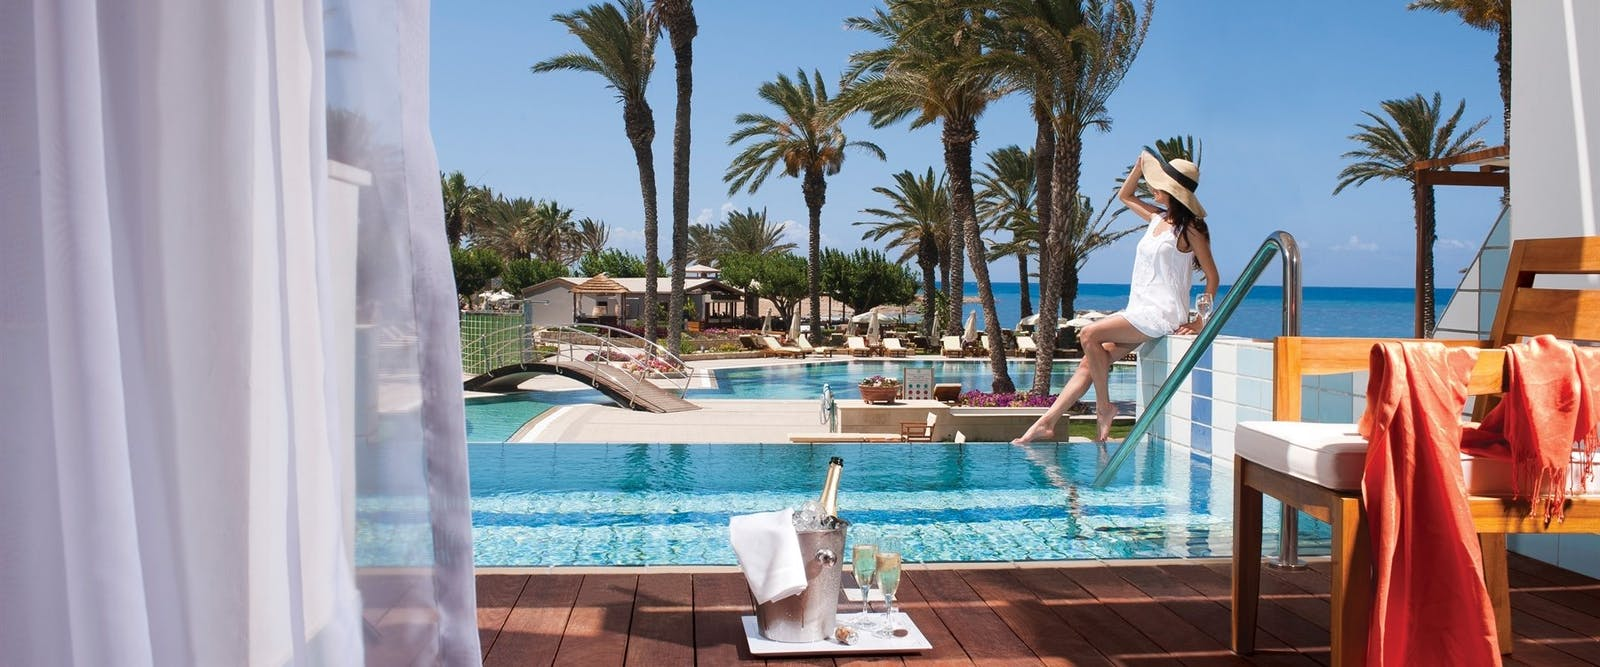 Private Pool at Constantinou Bros Asimina Suites Hotel, Paphos, Cyprus